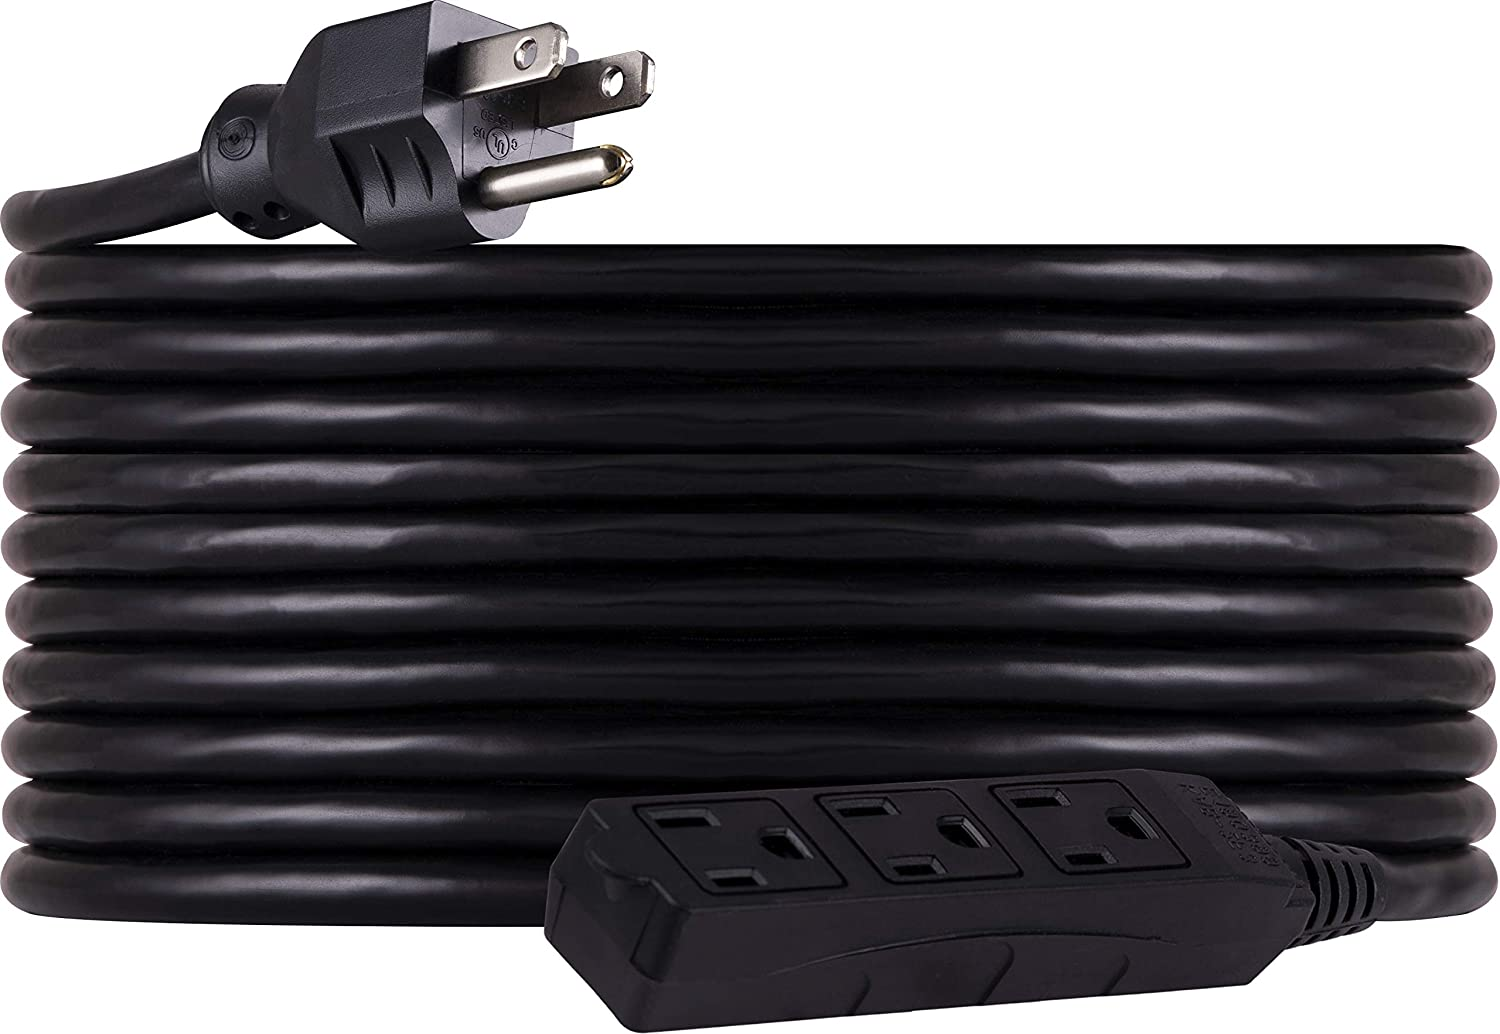 GE 25 Ft Outdoor/Indoor Extension Cord, 3 Prong Grounded Outlet, for Lighting, Power Tools, Holiday Decoration, 3 Wire, 16 Gauge, Double Insulated, One-Piece Molded Plug, Black, 36825